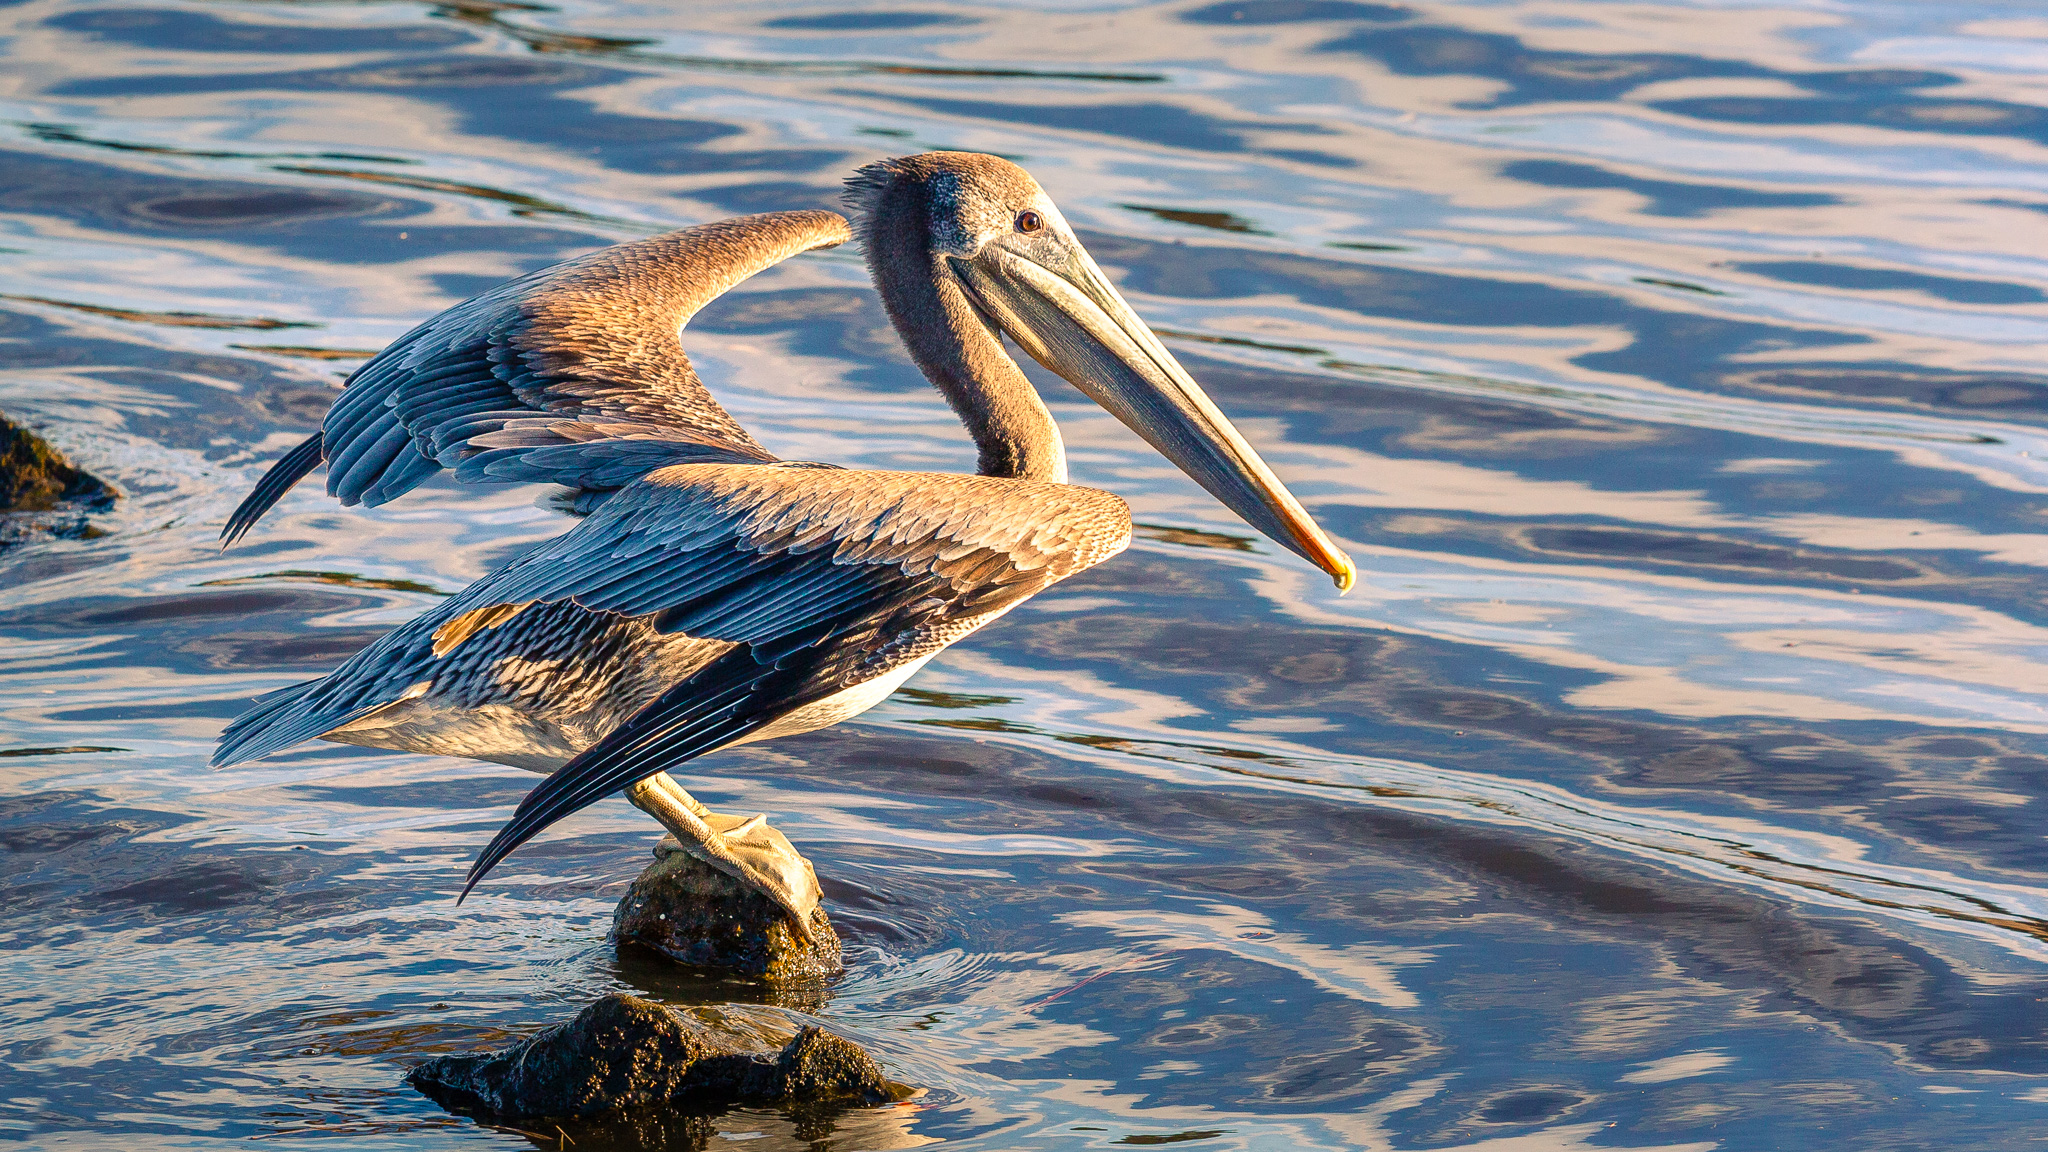 A Brown Pelican Preparing For Takeoff